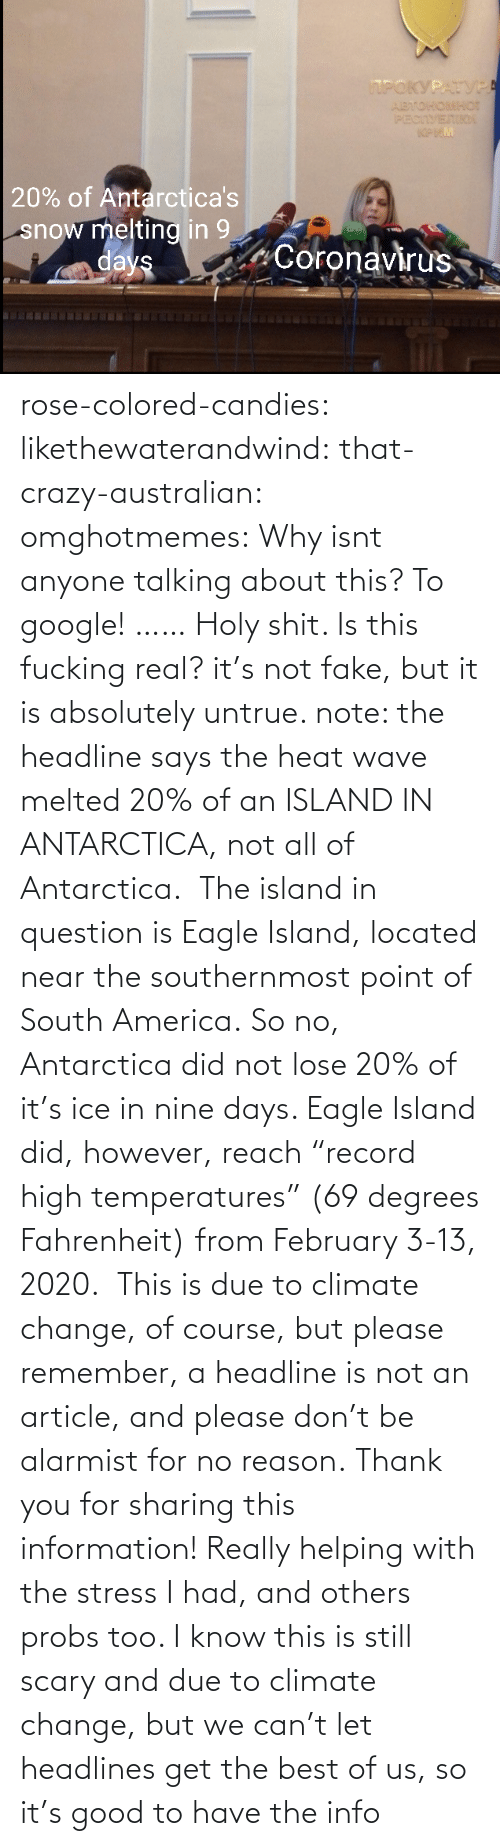 "the best: rose-colored-candies: likethewaterandwind:   that-crazy-australian:  omghotmemes:  Why isnt anyone talking about this?   To google!  ……   Holy shit. Is this fucking real?   it's not fake, but it is absolutely untrue. note: the headline says the heat wave melted 20% of an ISLAND IN ANTARCTICA, not all of Antarctica.  The island in question is Eagle Island, located near the southernmost point of South America. So no, Antarctica did not lose 20% of it's ice in nine days. Eagle Island did, however, reach ""record high temperatures"" (69 degrees Fahrenheit) from February 3-13, 2020.  This is due to climate change, of course, but please remember, a headline is not an article, and please don't be alarmist for no reason.    Thank you for sharing this information! Really helping with the stress I had, and others probs too. I know this is still scary and due to climate change, but we can't let headlines get the best of us, so it's good to have the info"